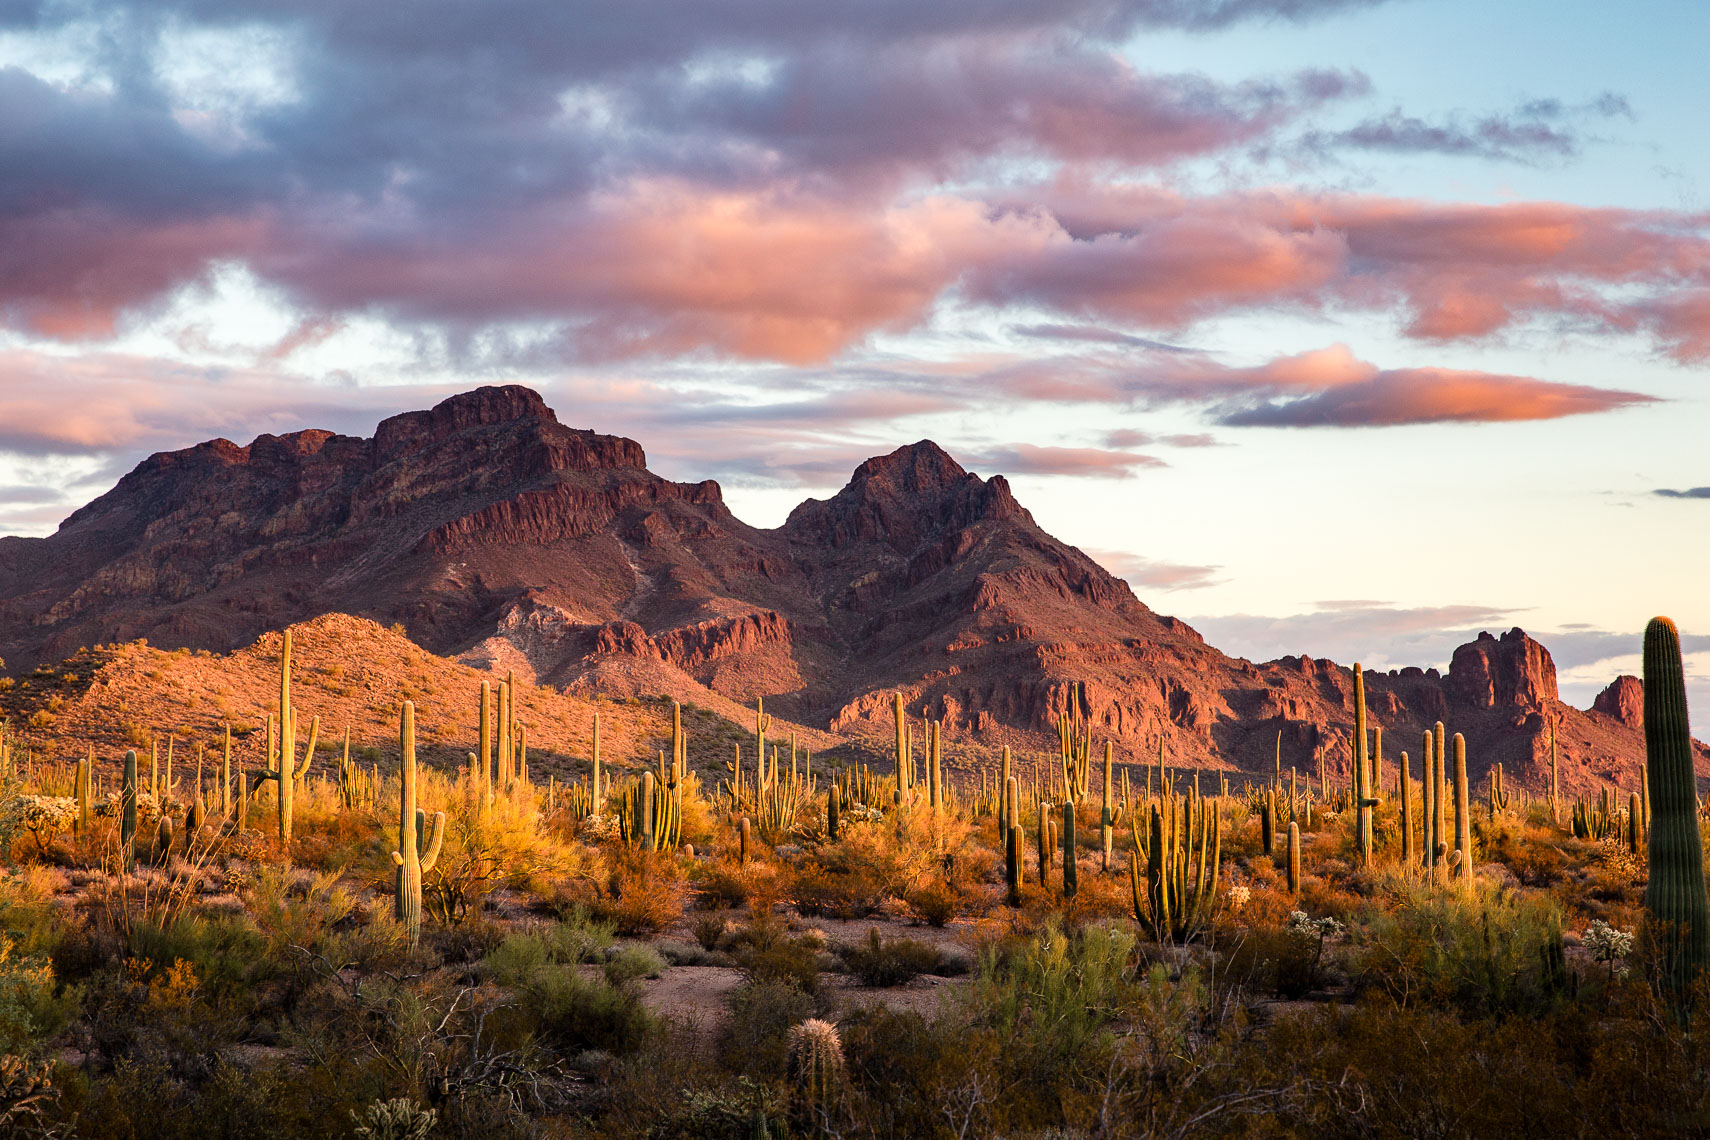 Sunset on Ajo Mountain